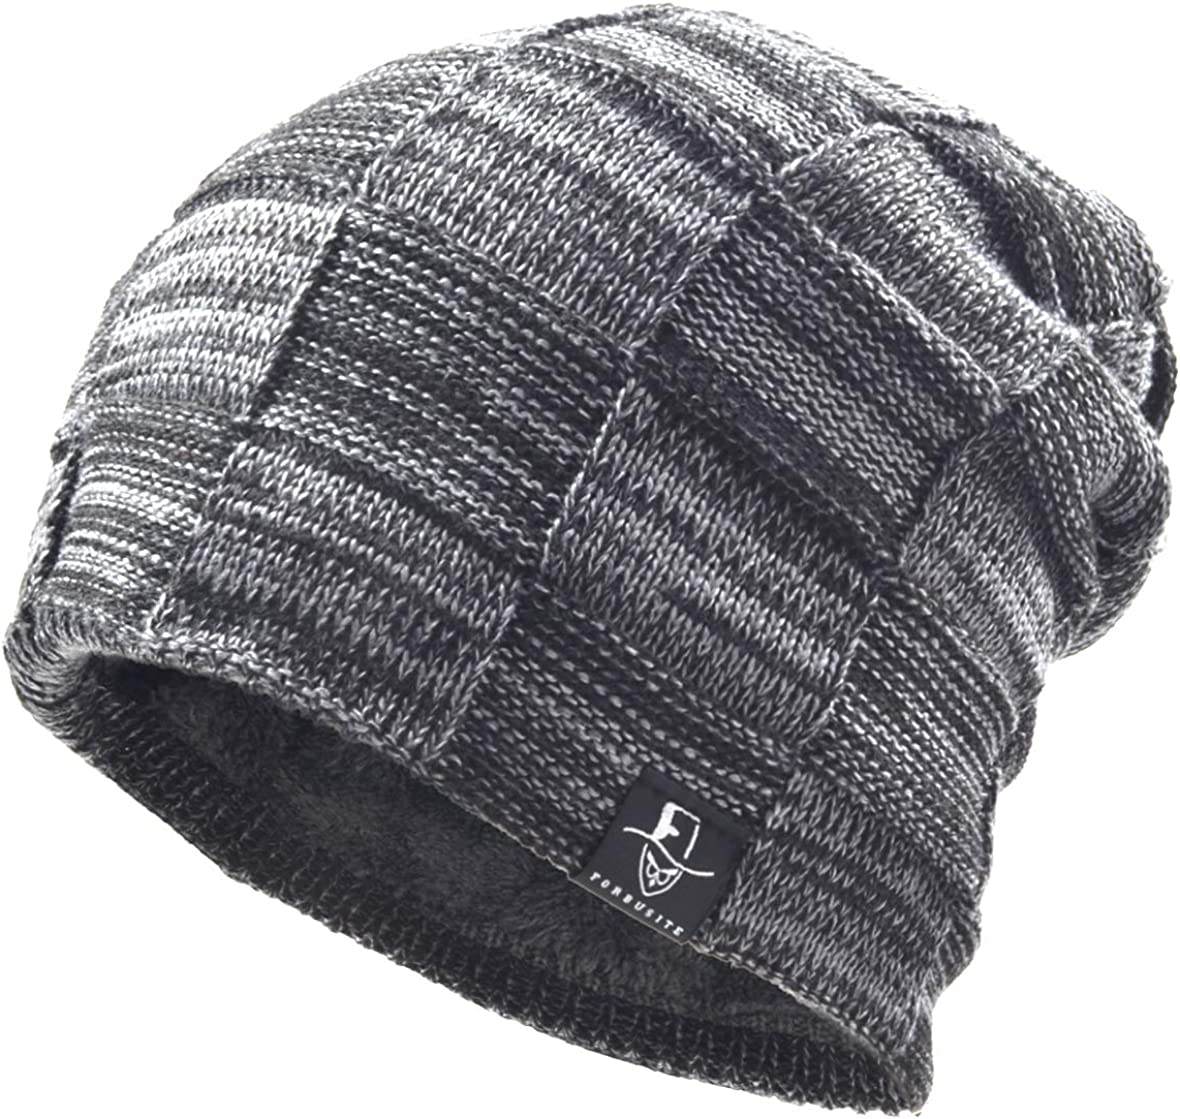 Under Armour Mens Earbud Beanie